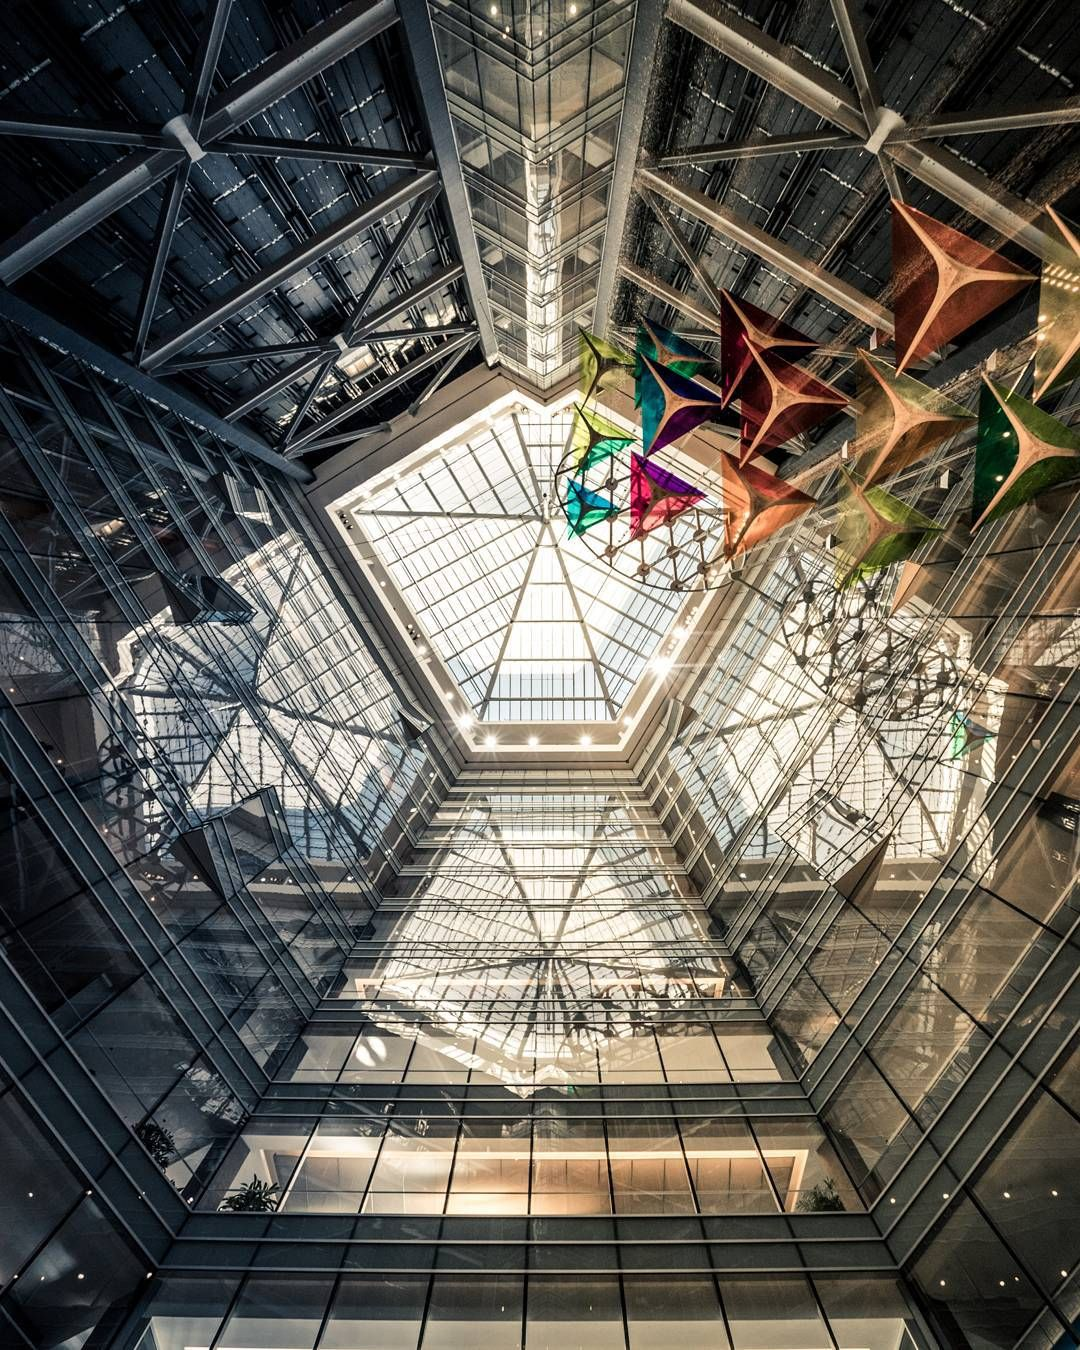 This Photo Is Taken Looking Straight Upwards From The Base Of The